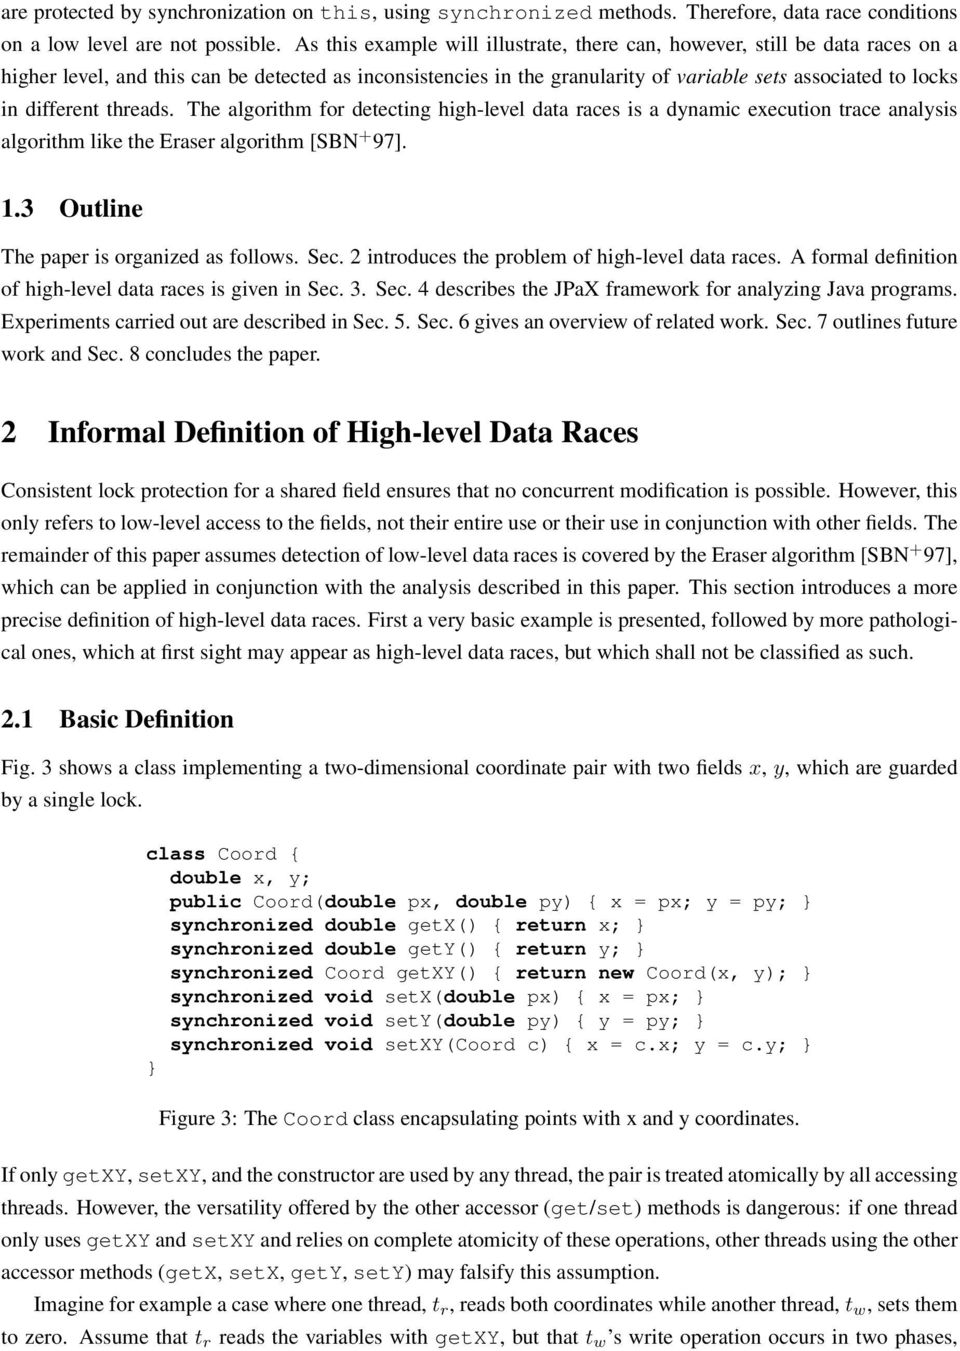 different threads. The algorithm for detecting high-level data races is a dynamic execution trace analysis algorithm like the Eraser algorithm [SBN + 97]. 1.